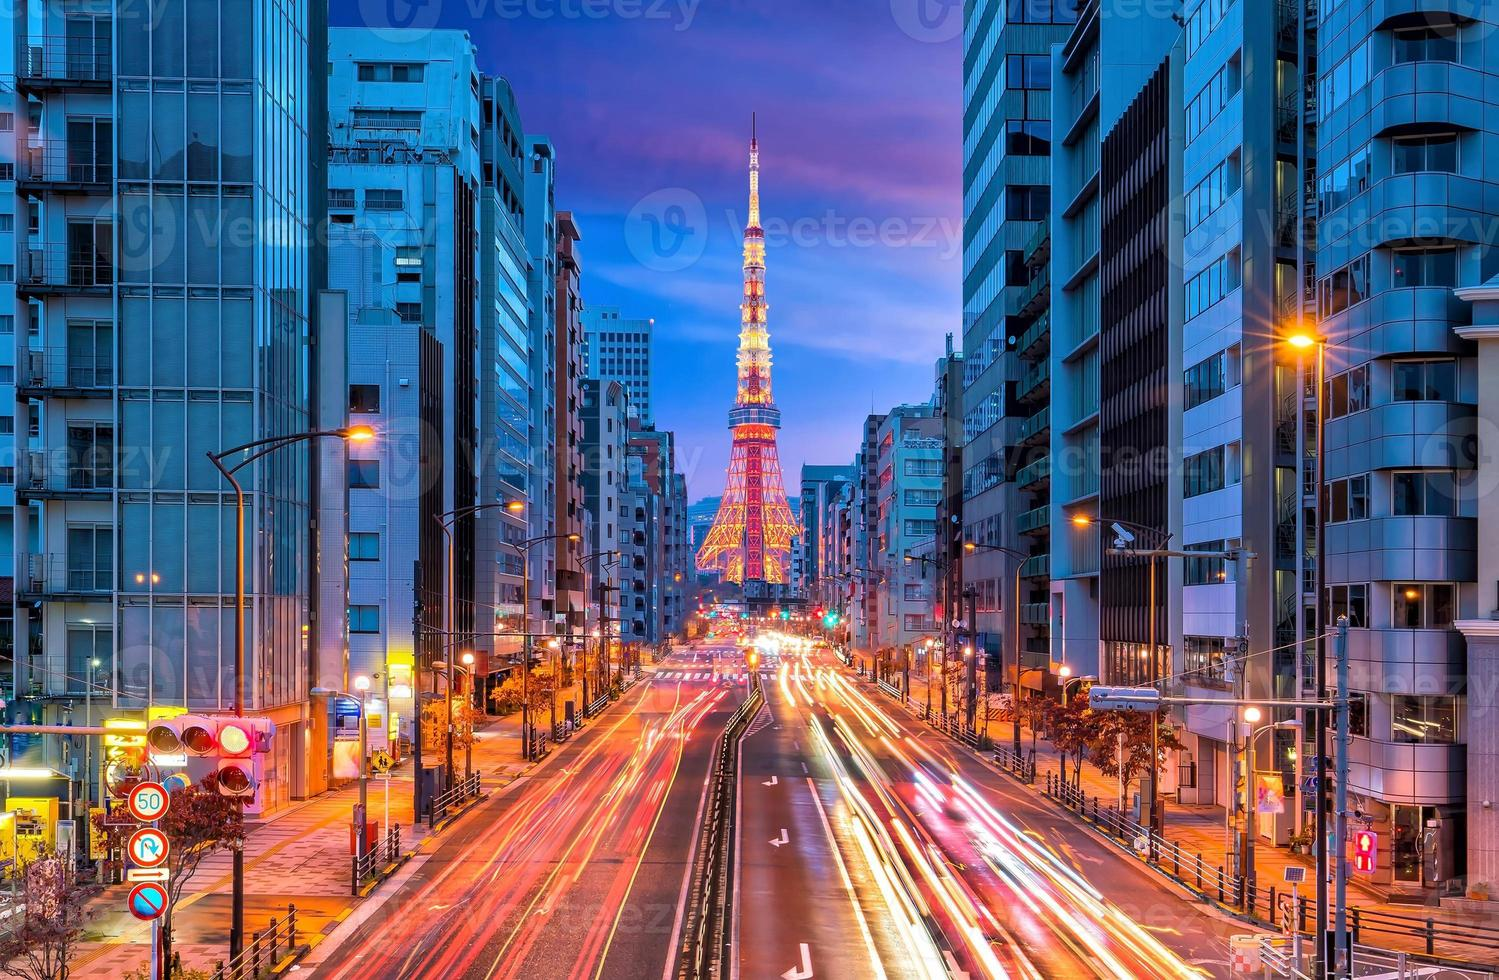 Tokyo city street view with Tokyo Tower photo